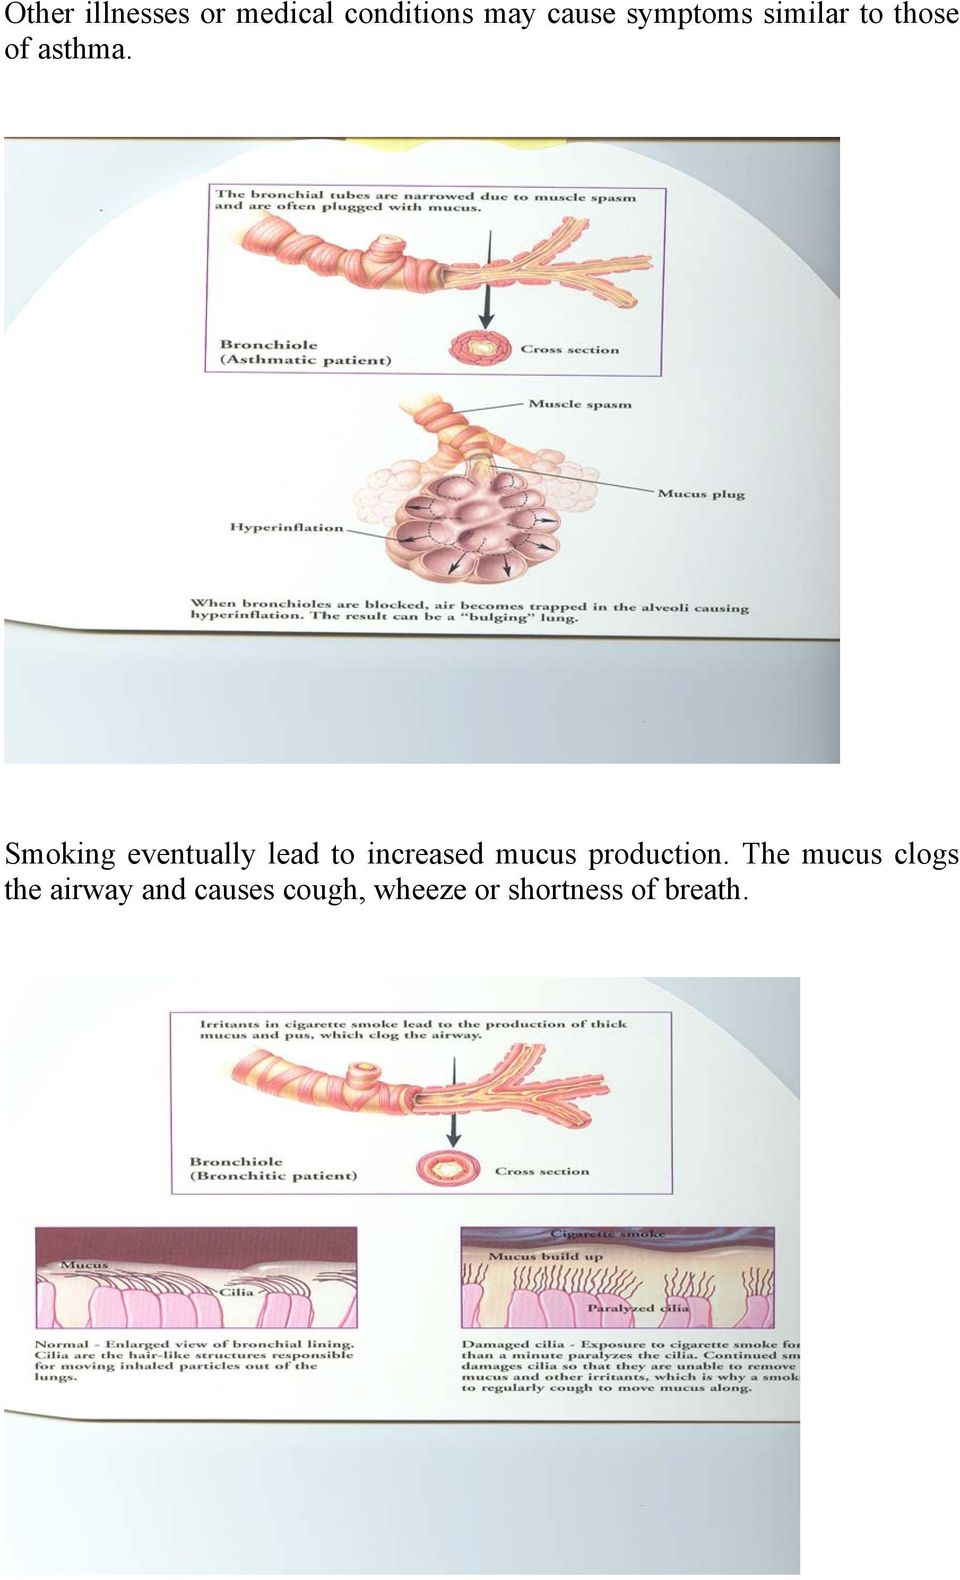 Smoking eventually lead to increased mucus production.